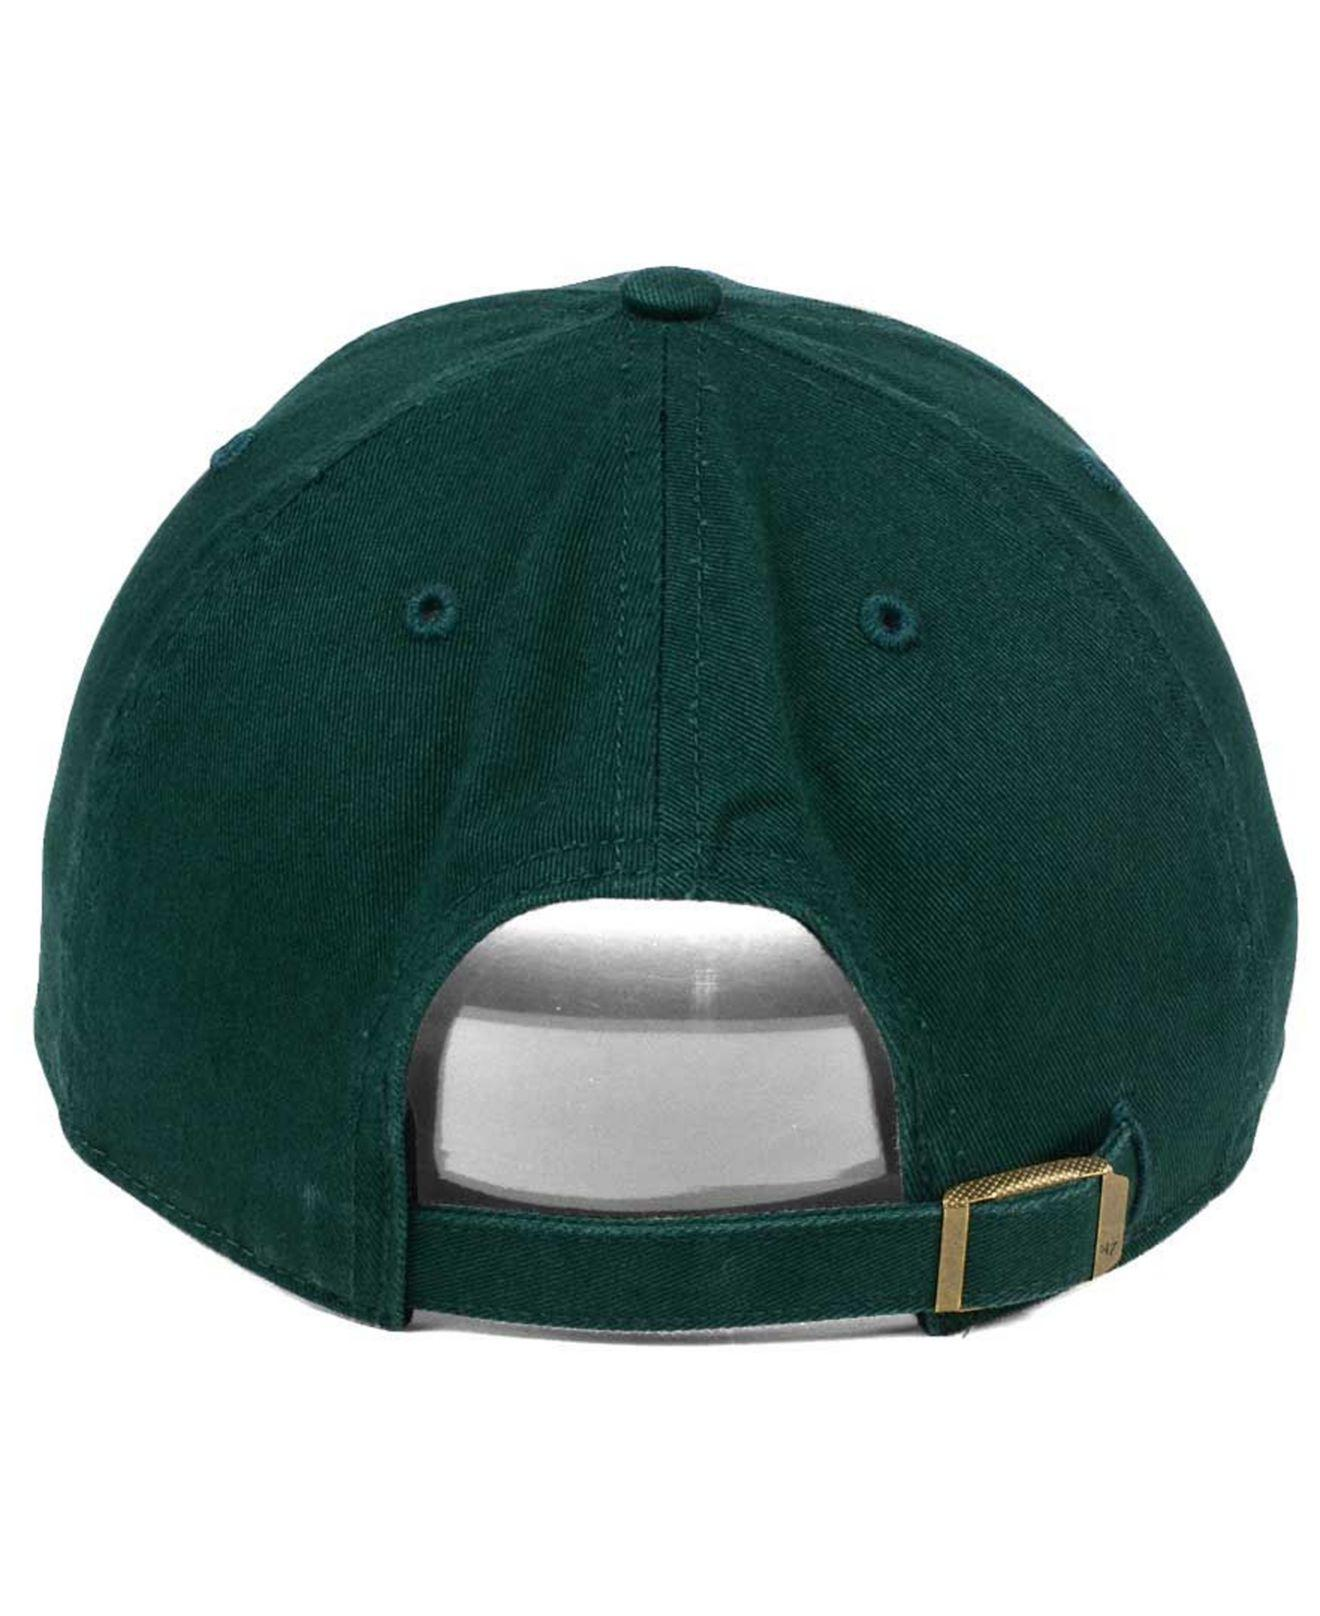 new products 3d68d 6a587 ... clearance 47 brand green triple rush clean up cap for men lyst. view  fullscreen 1f41b